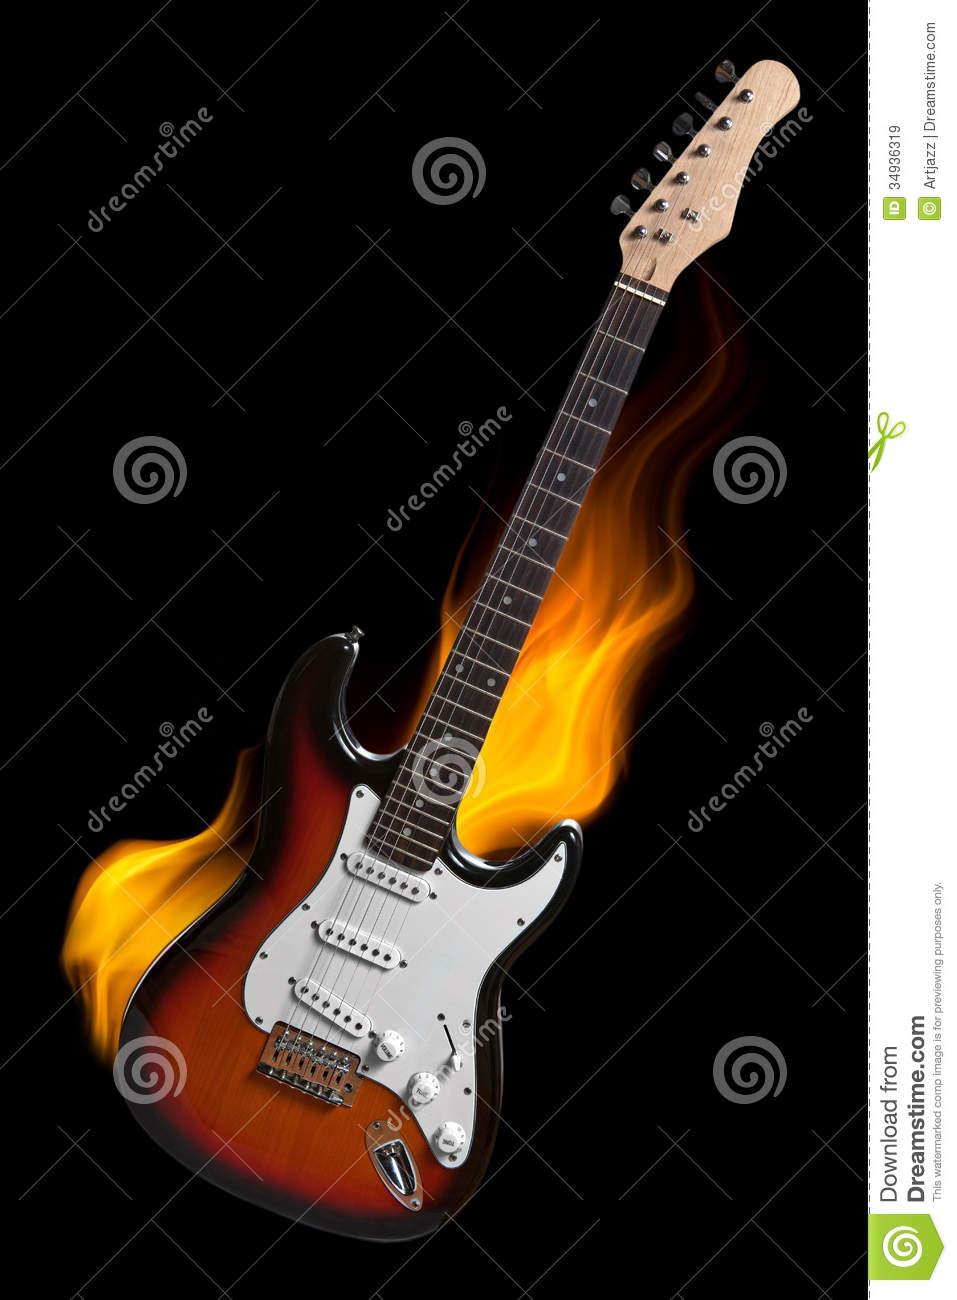 Black Electric Guitar With Flames Electric guitar on fire